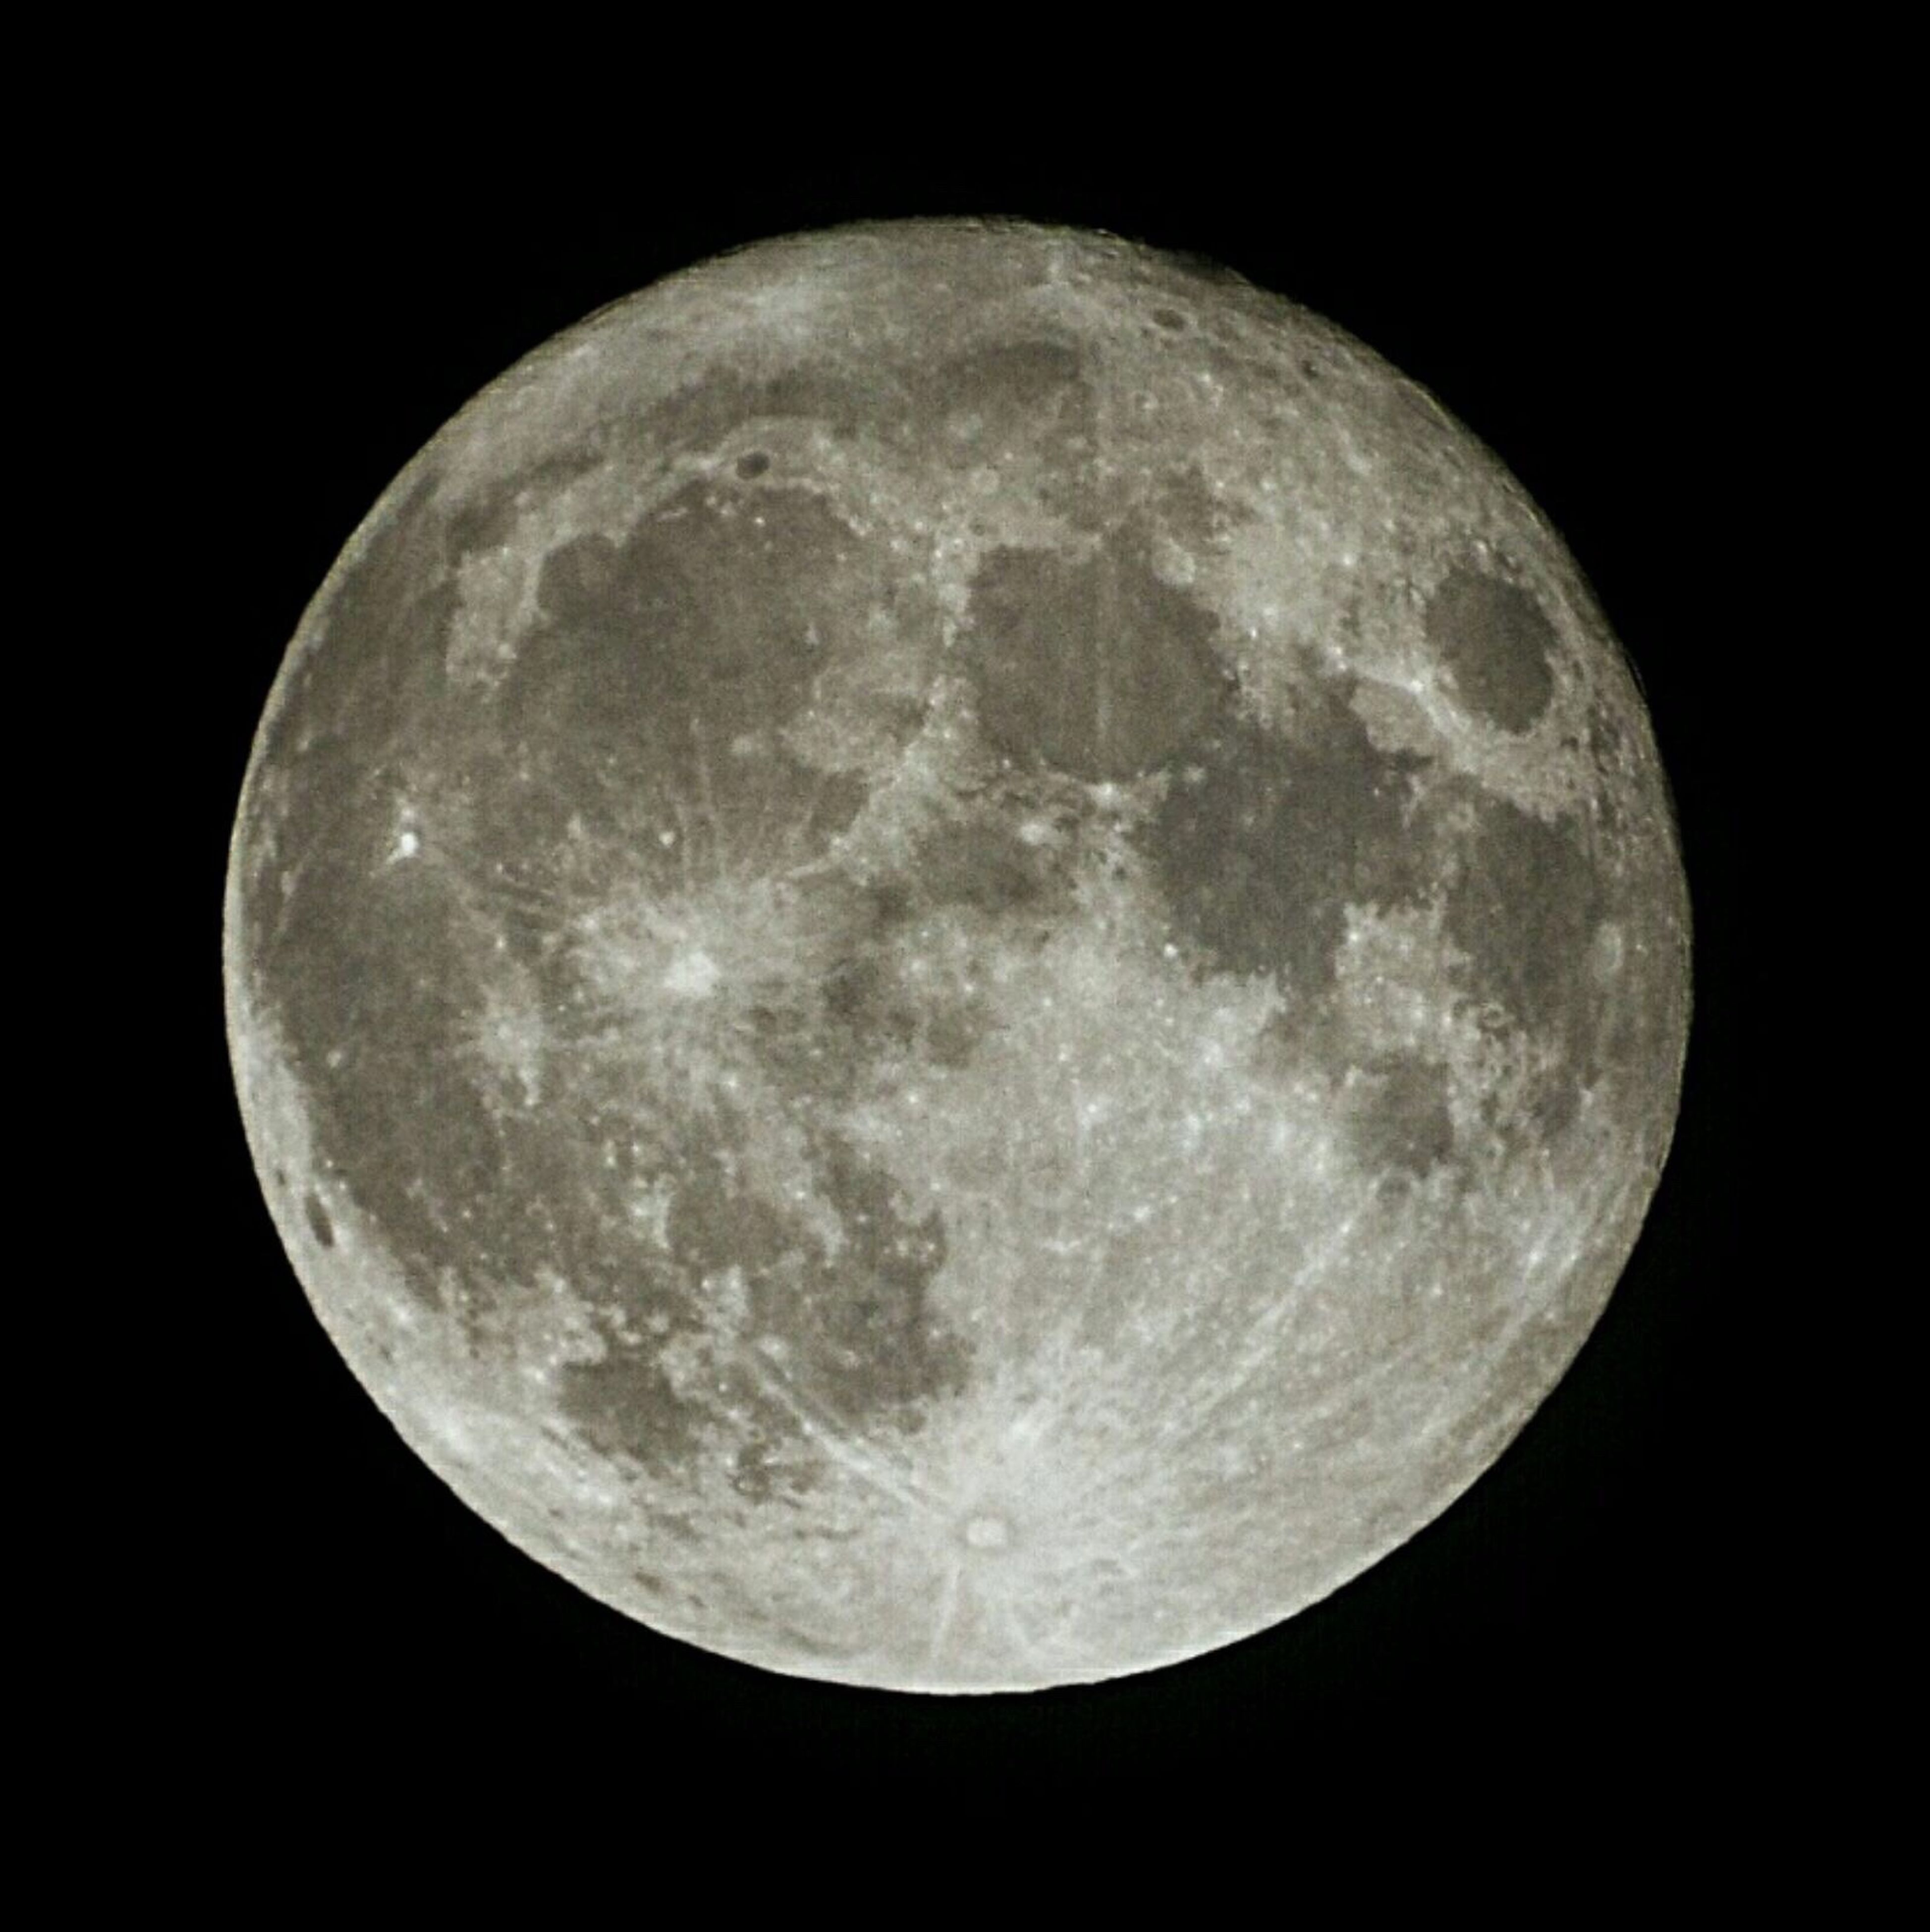 moon, full moon, night, moon surface, astronomy, space, black background, nature, no people, tranquility, planetary moon, outdoors, beauty in nature, sky, midnight